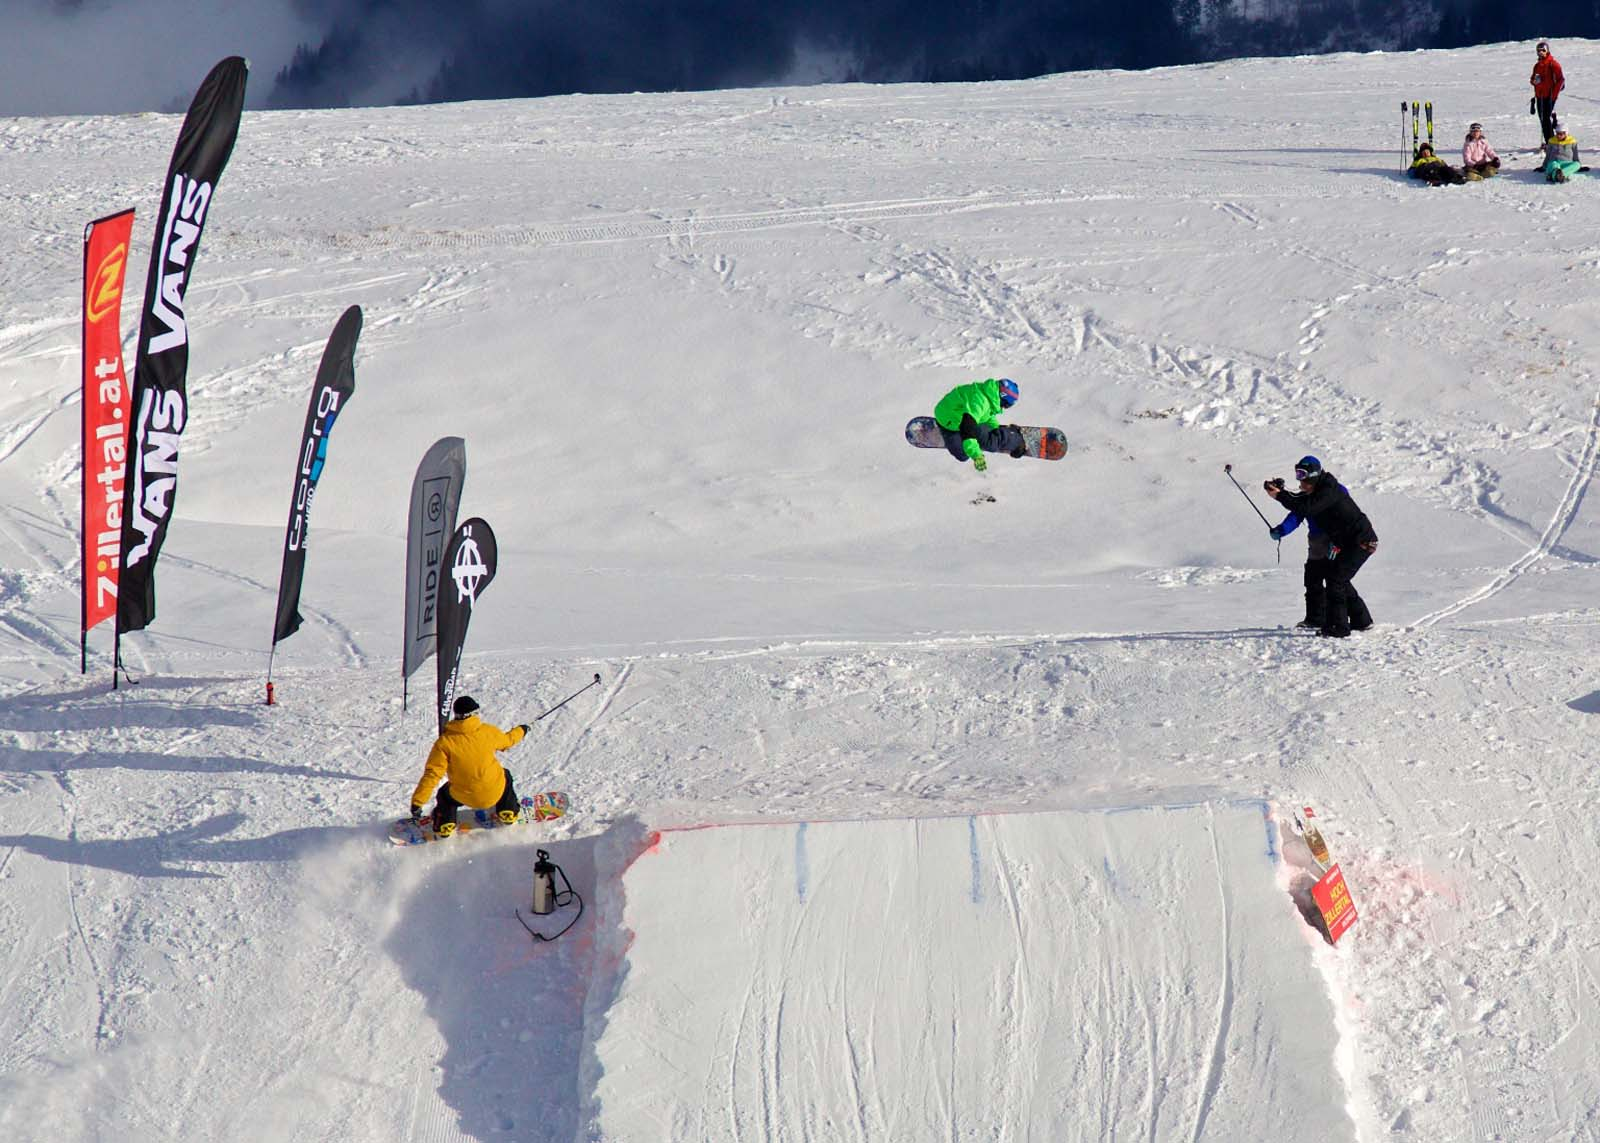 Zillertal Välley Rälley hosted by Ride Snowboards 2015 / 2016 - Foto: Gustav Ohlsson